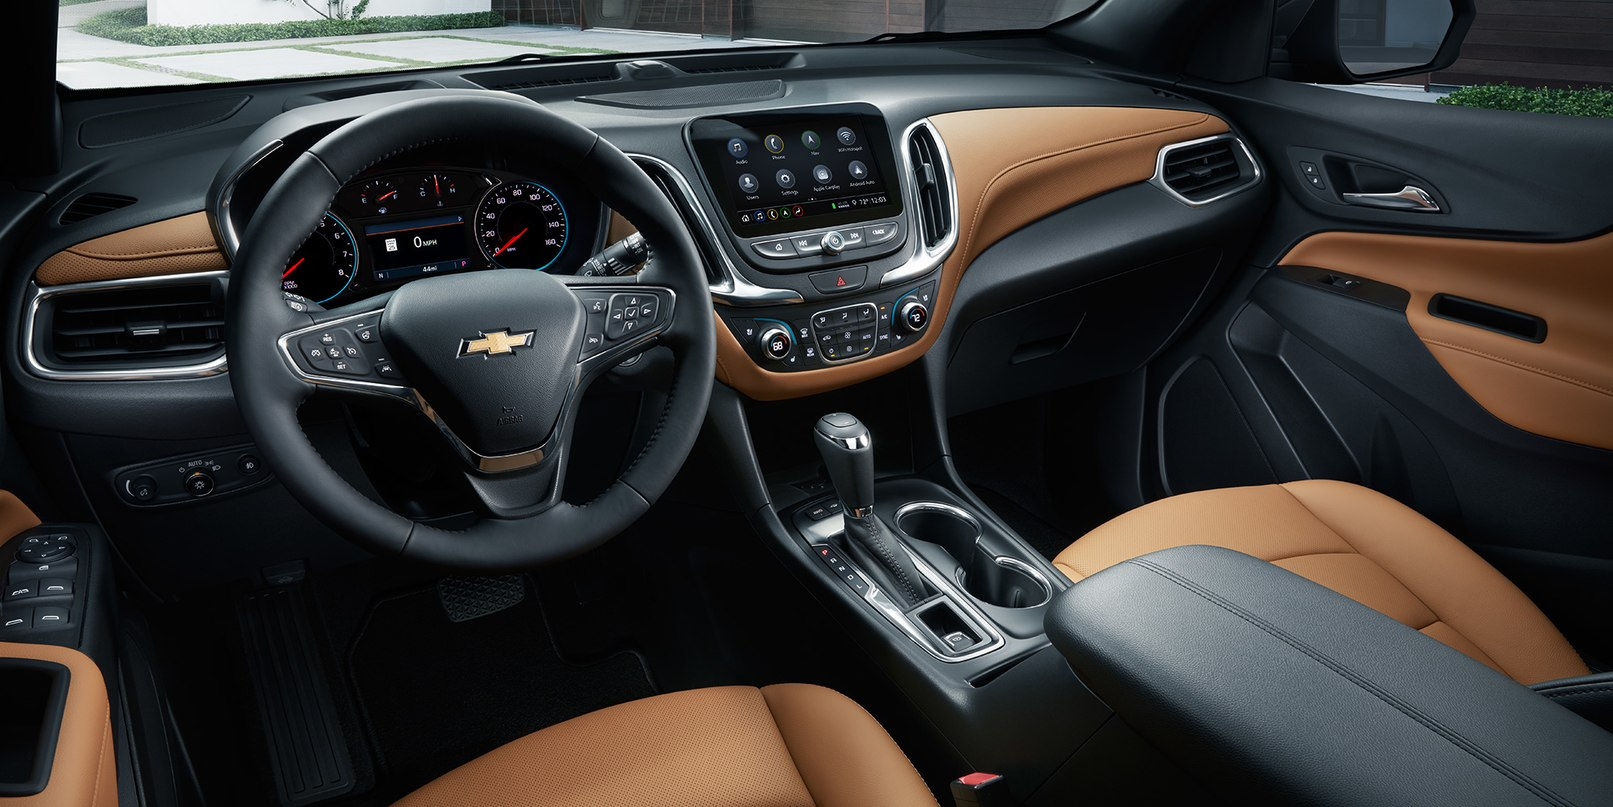 Interior of the Chevrolet Equinox